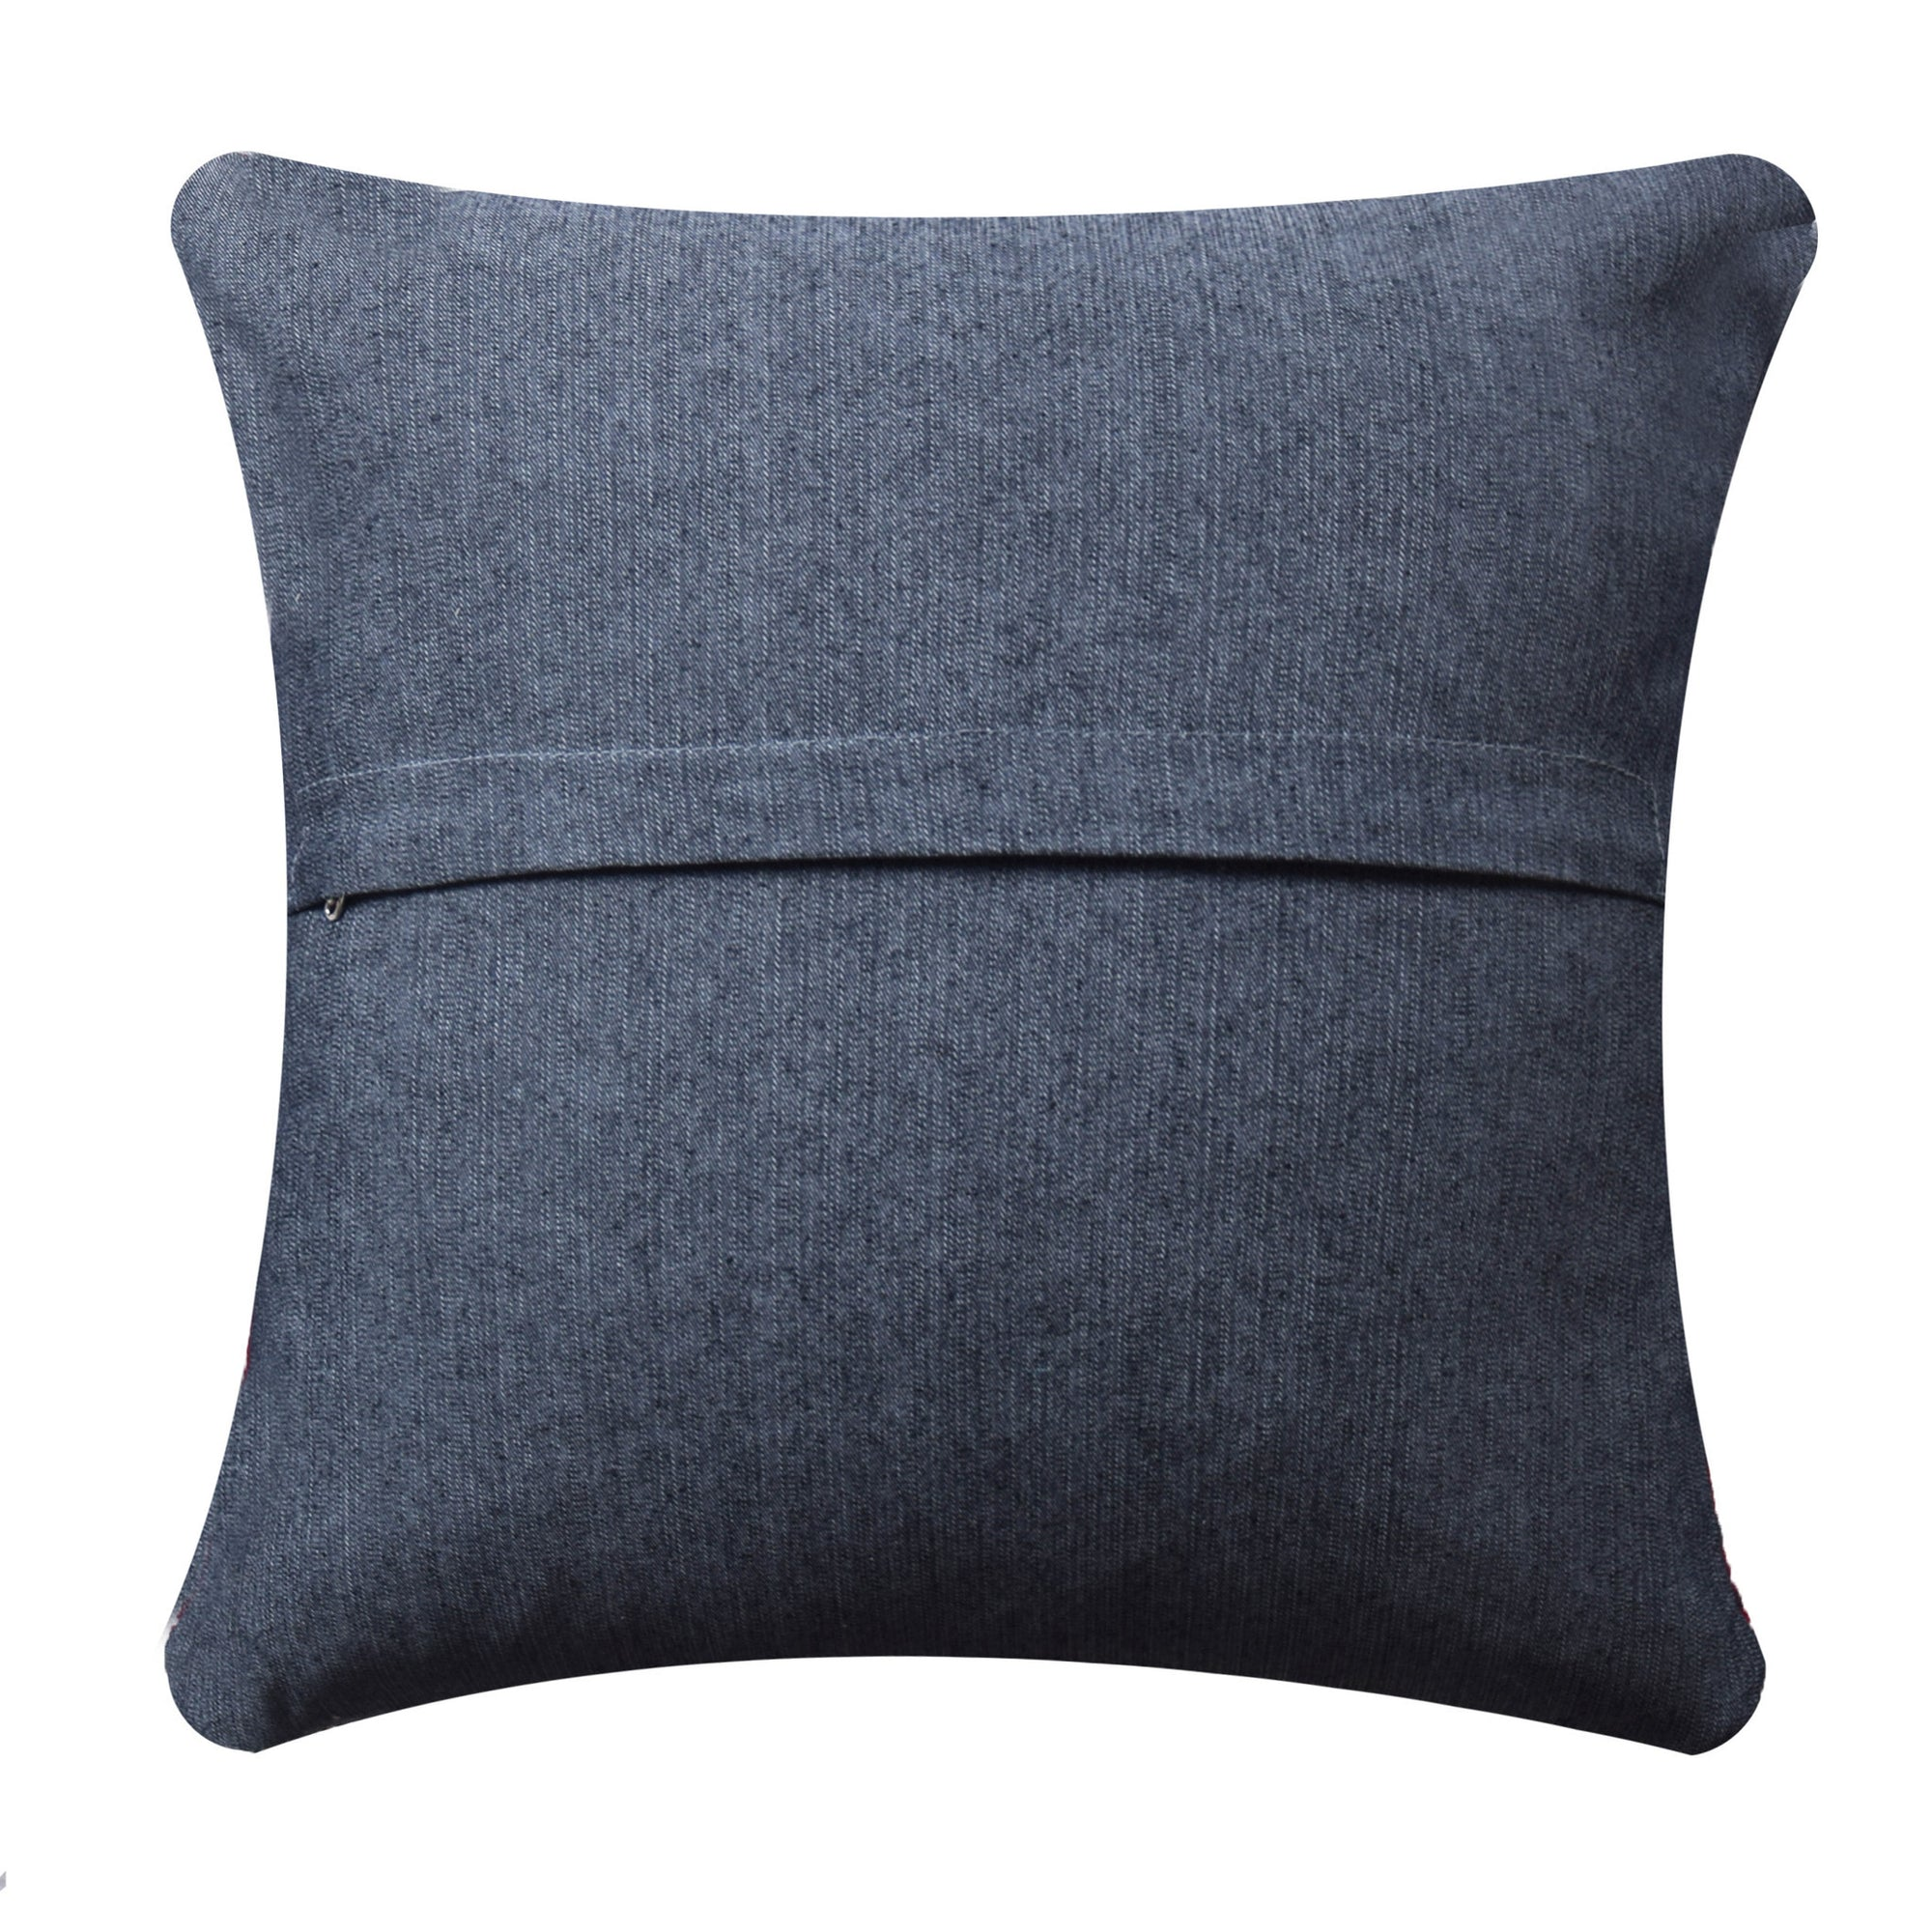 60X60 CM Hali CUSHION COVER -  هالي 60*60 غطاء وسادة سم - Shop Online Furniture and Home Decor Store in Dubai, UAE at ebarza